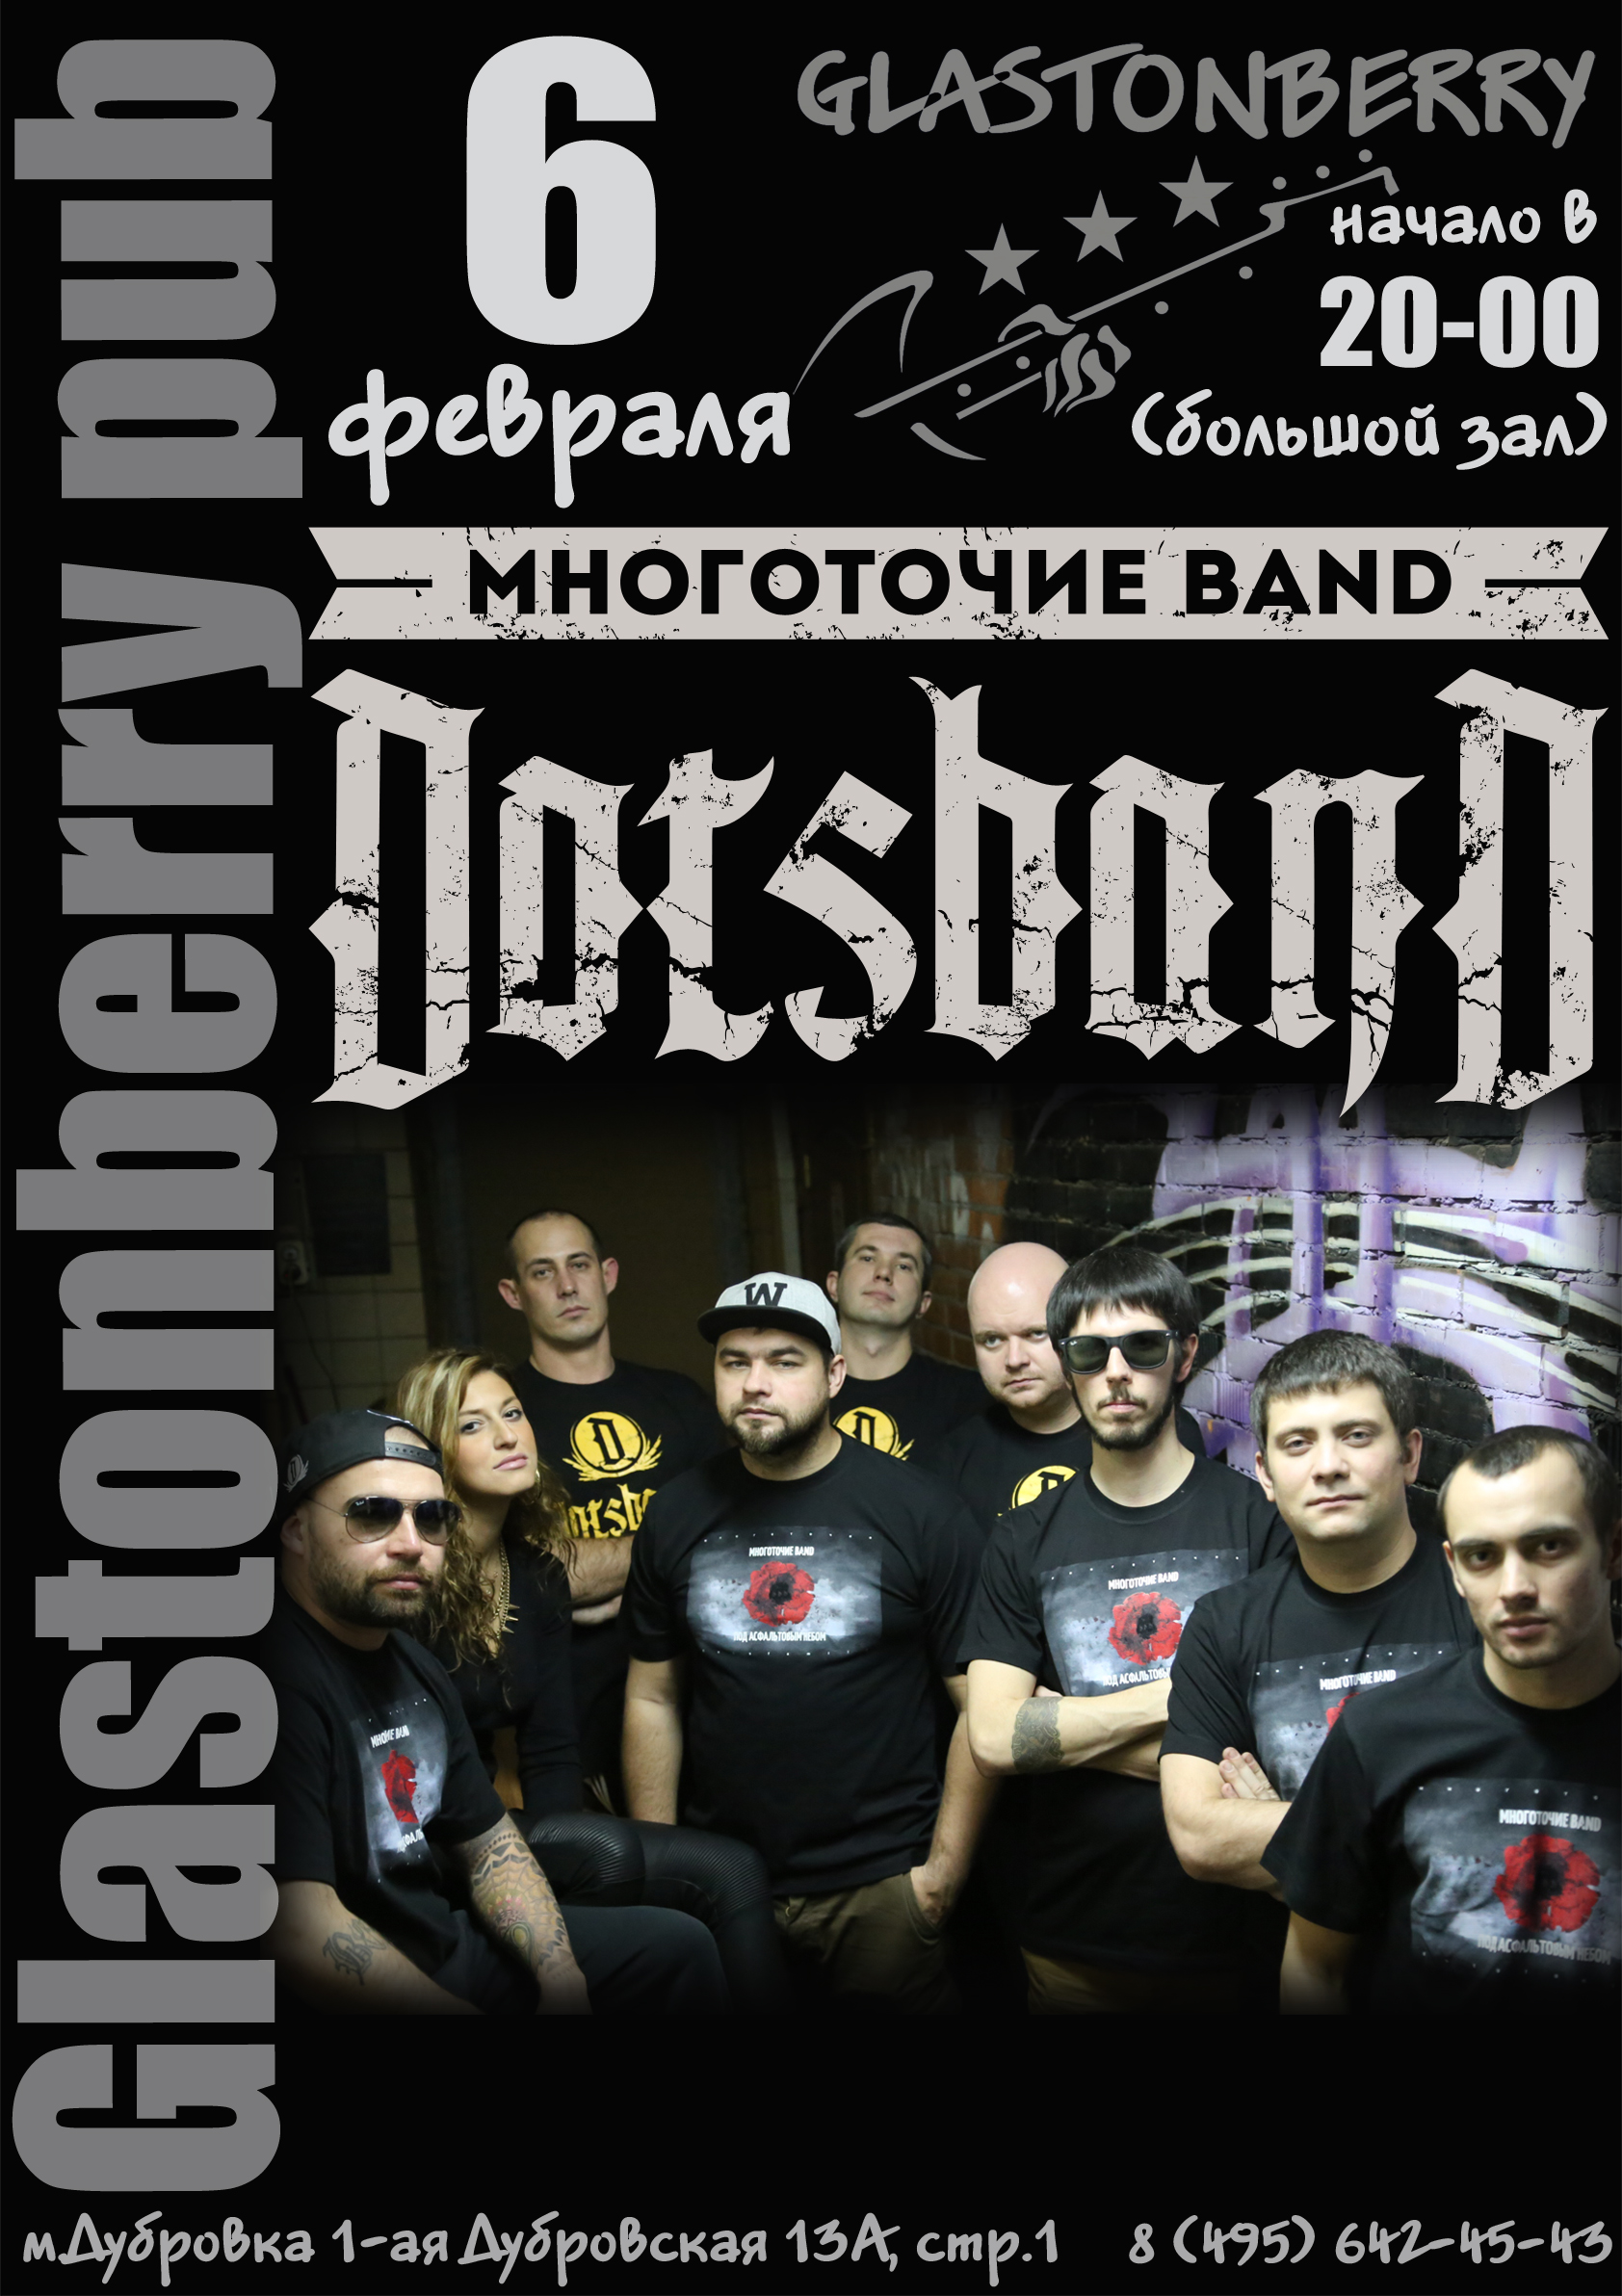 МНОГОТОЧИЕ BAND 6 февраля МОСКВА Glastonberry PUB